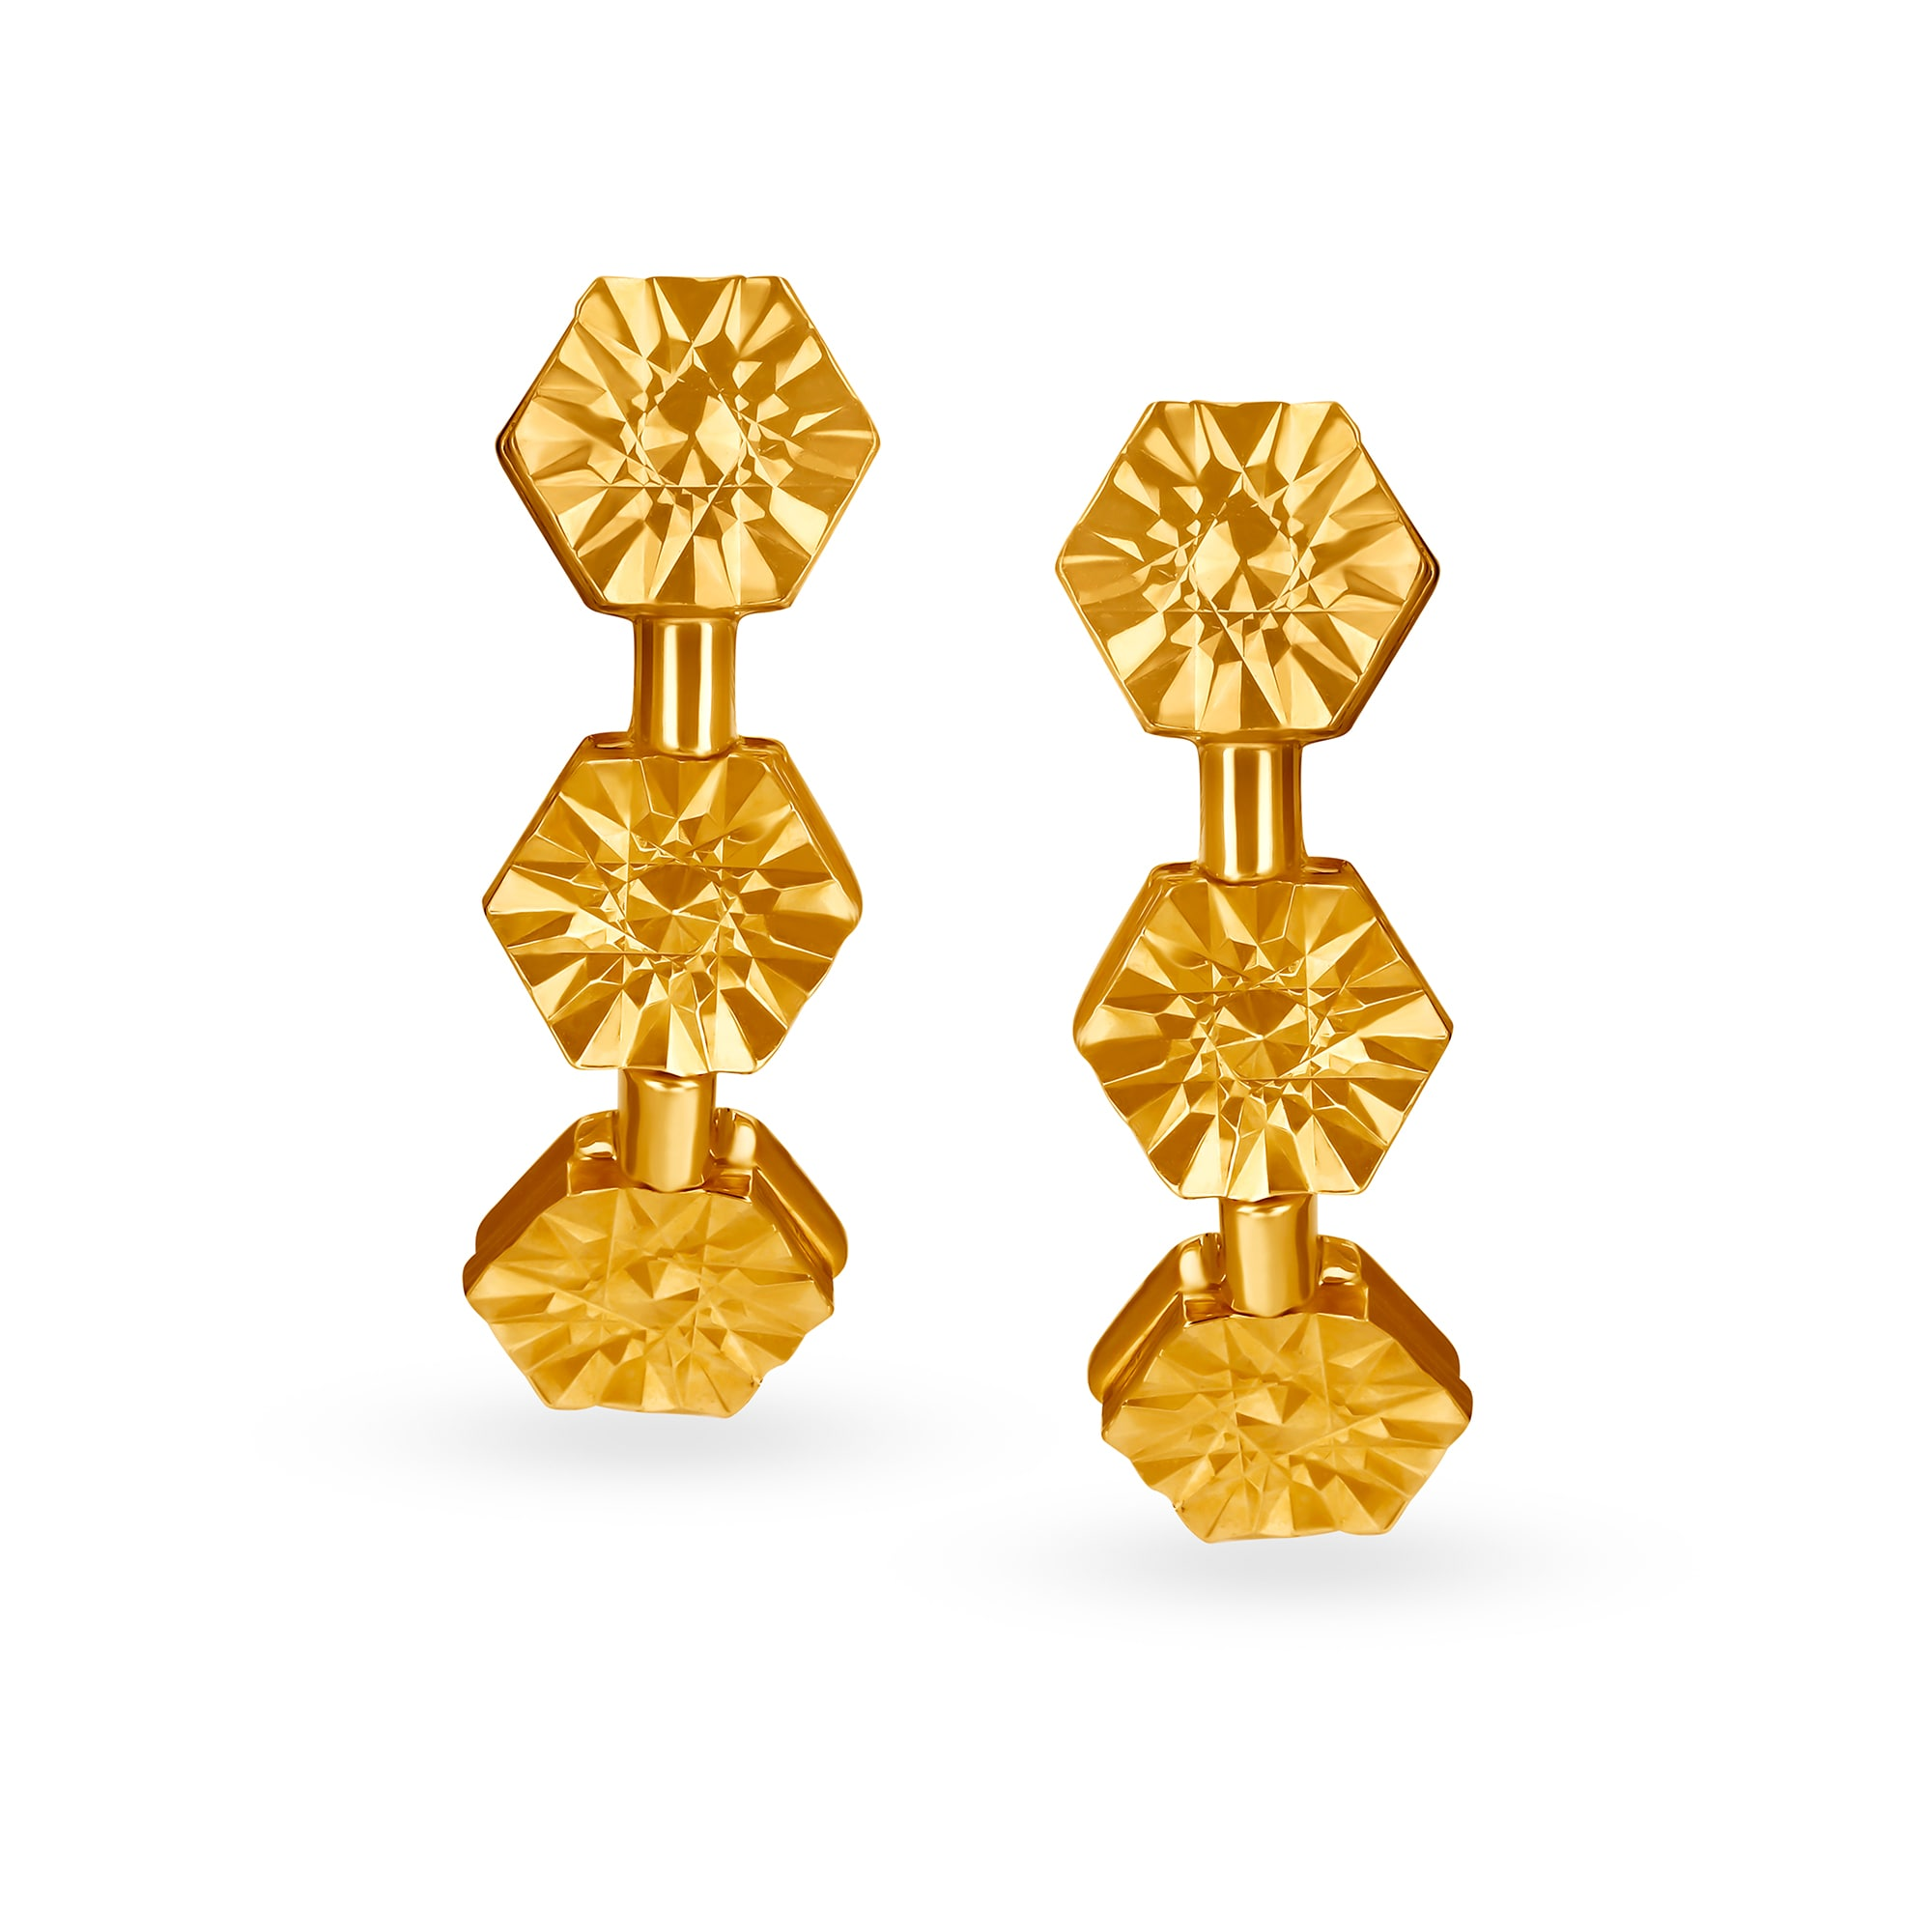 fae04908f8a35 Mia by Tanishq 14KT Yellow Gold Hoop Earrings with Hexagon Design